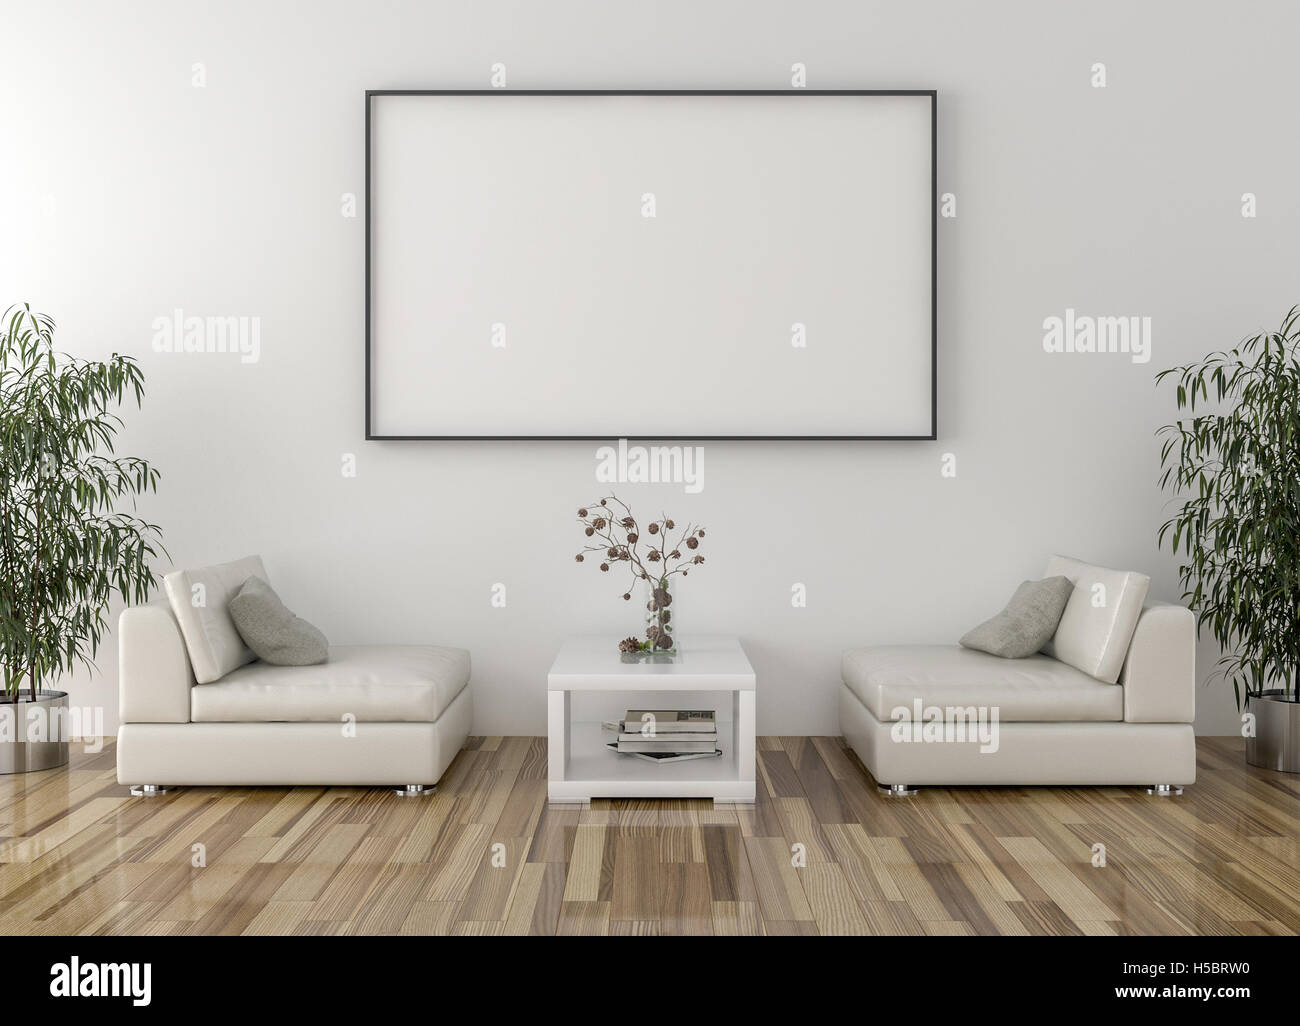 Waiting Room Blank Picture Frame Stock Photos & Waiting Room Blank ...